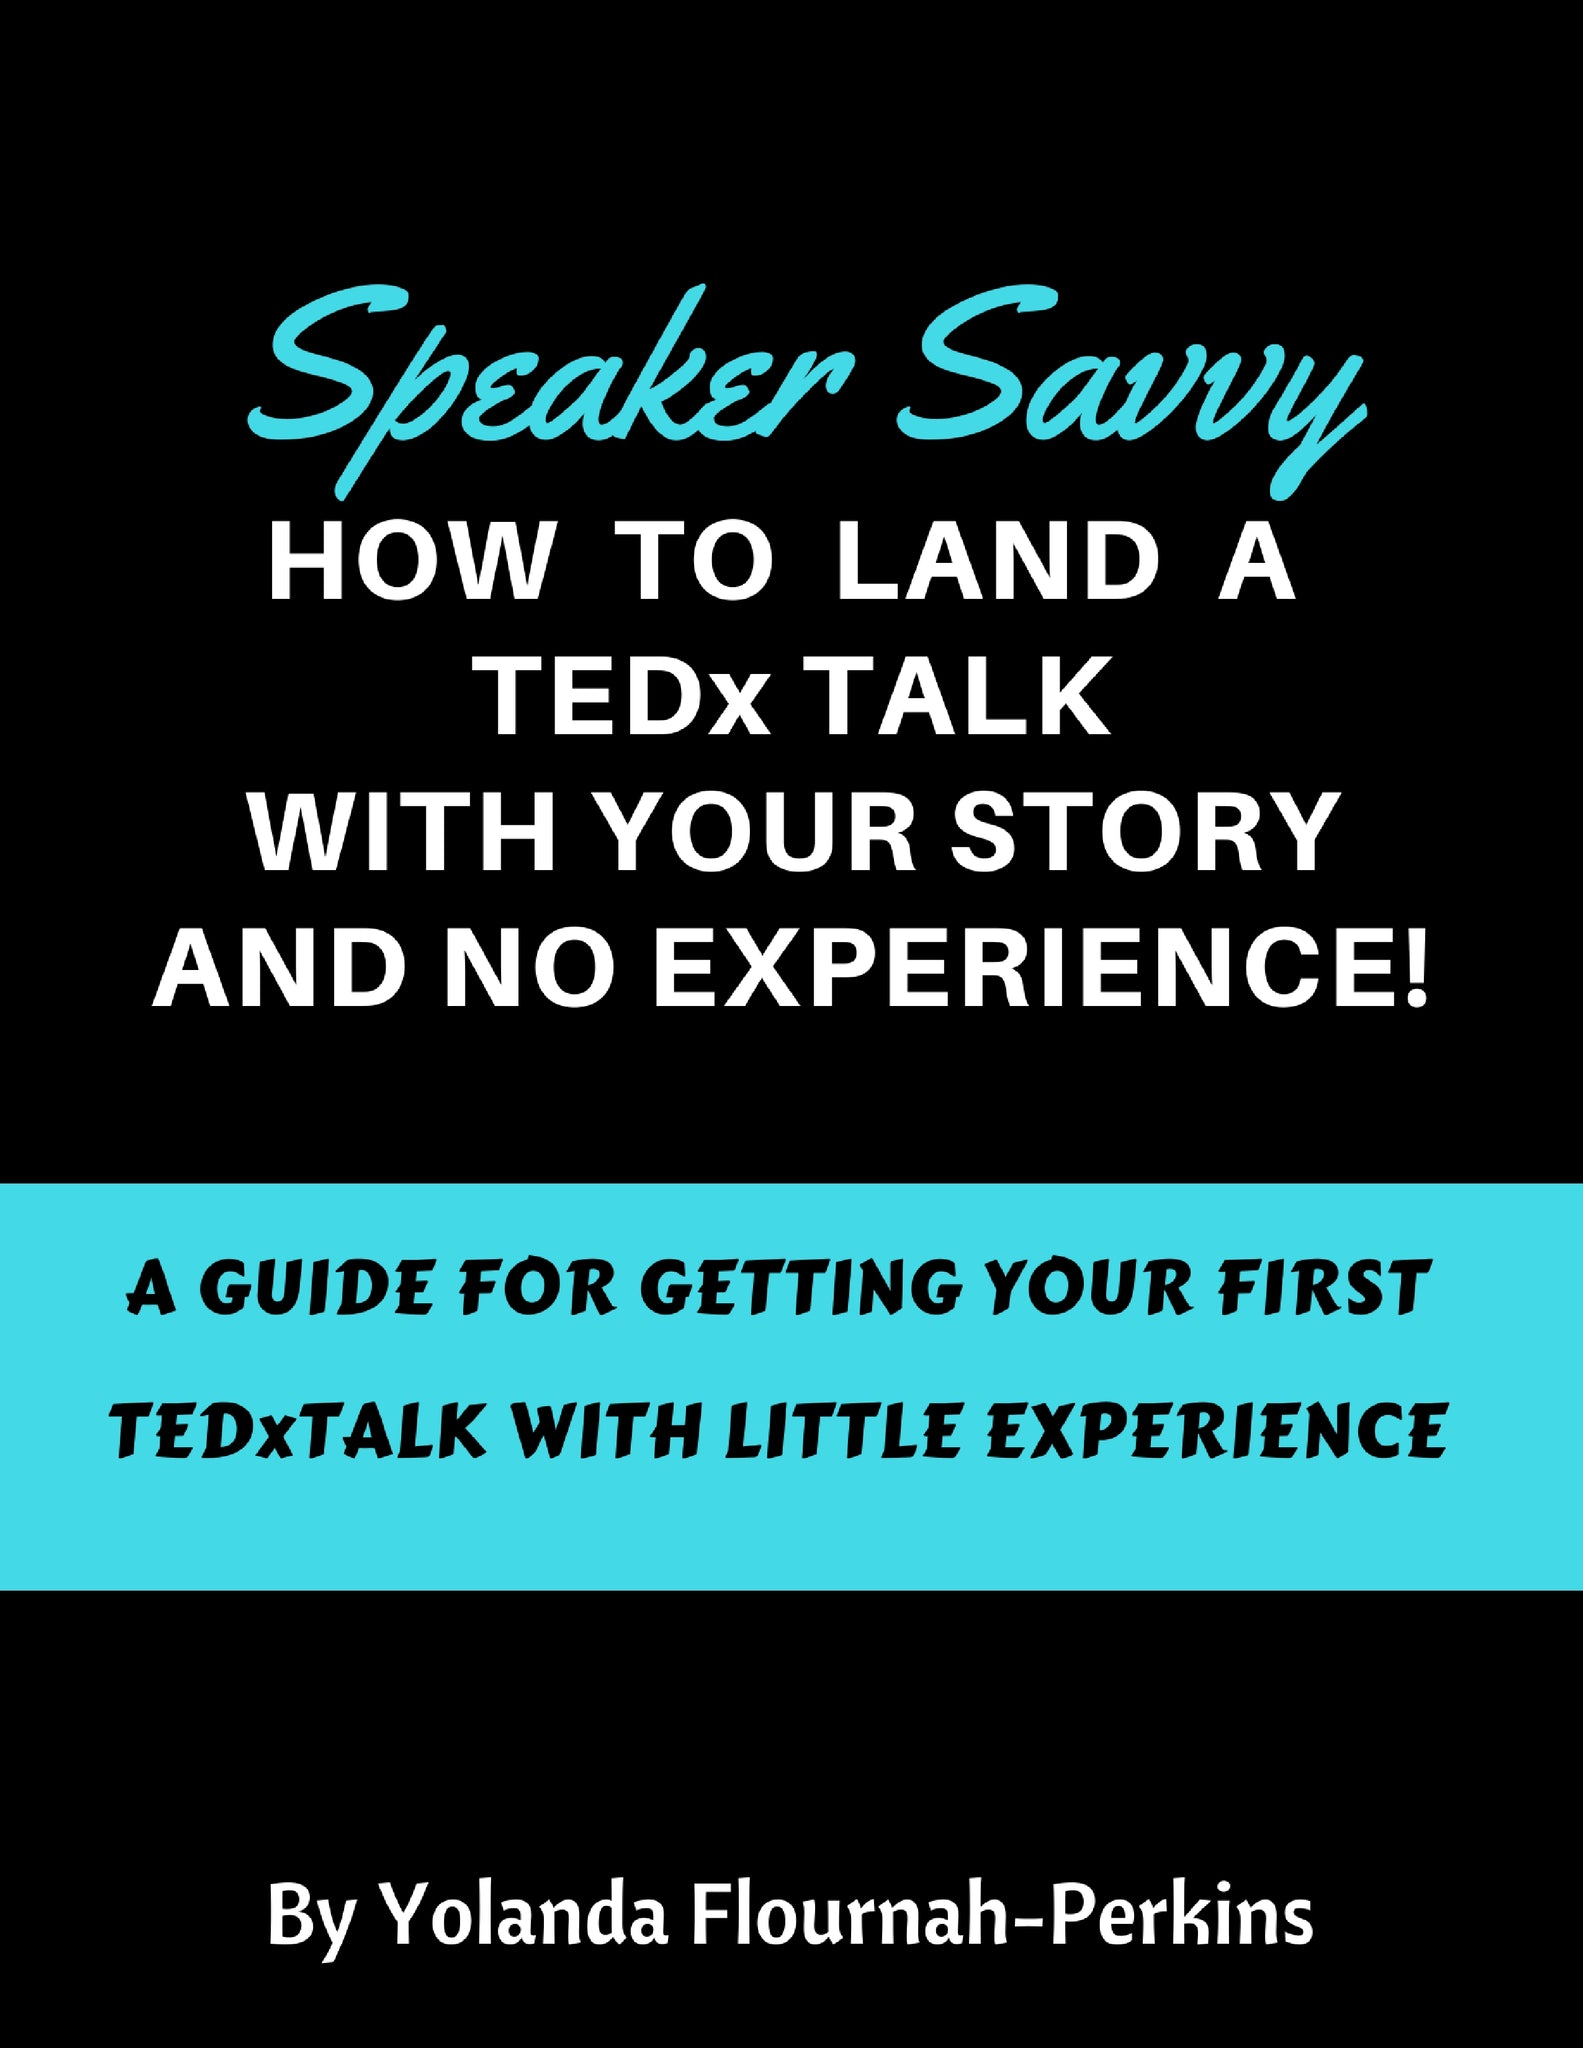 How To Land A TEDx TALK - digital download